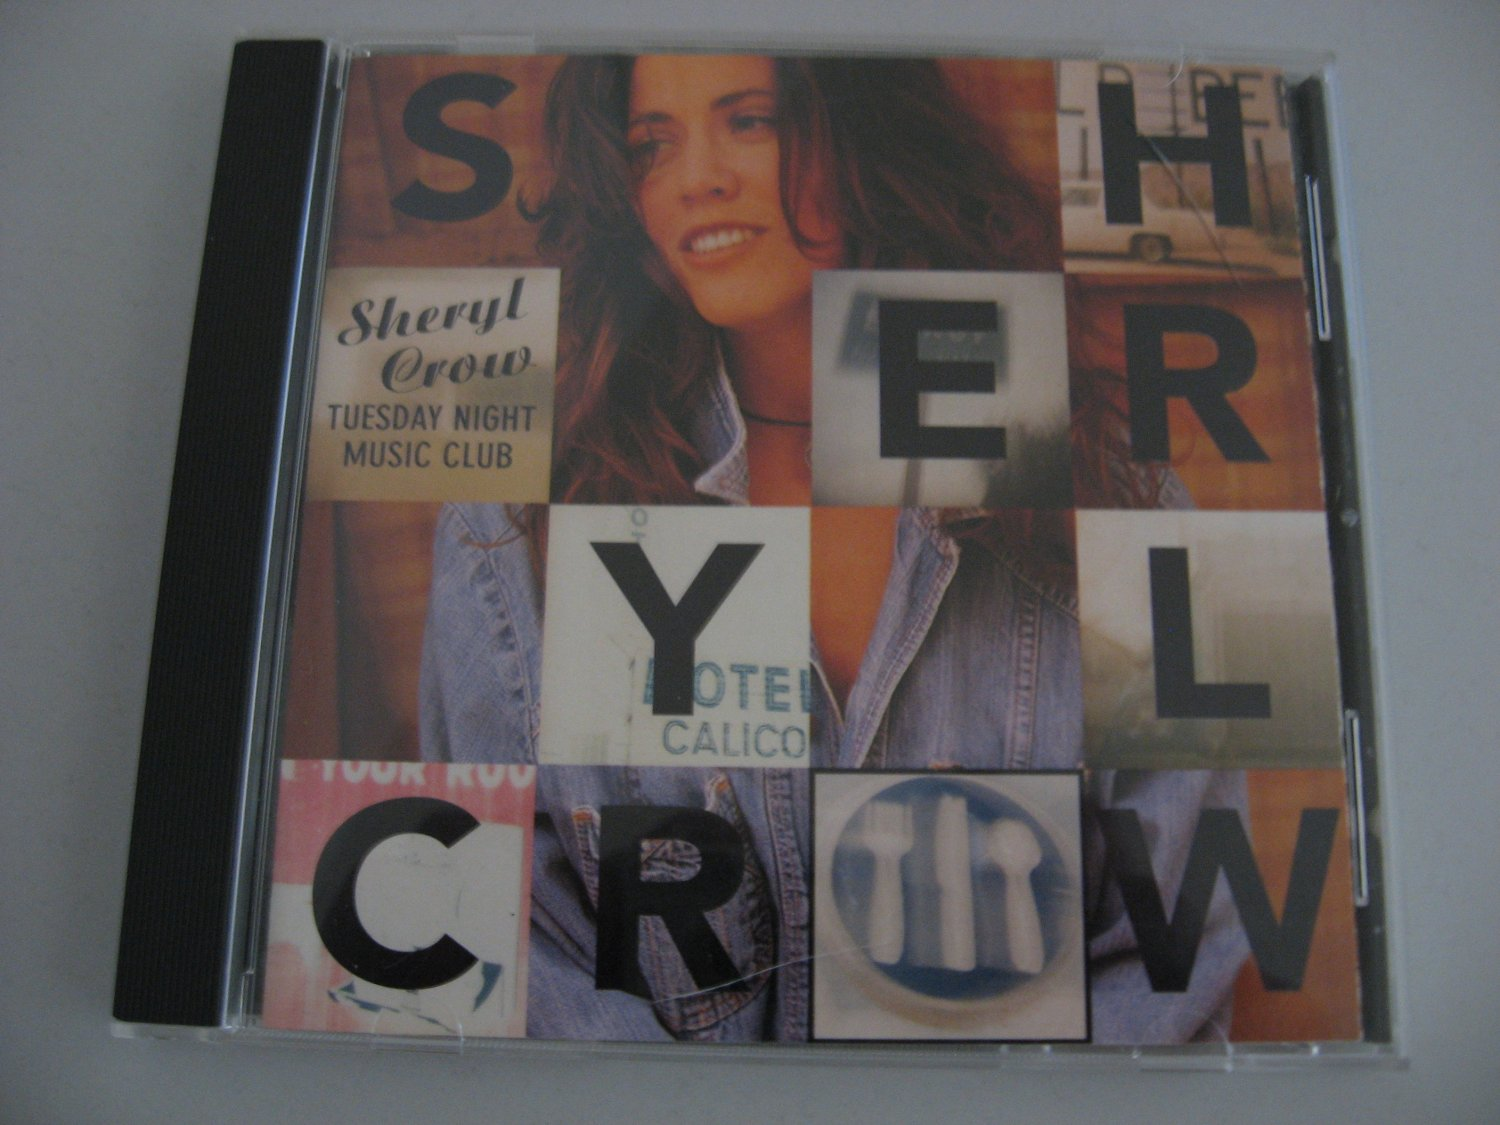 Sheryl Crow - Tuesday Night Music Club - Circa 1993 - Compact Disc